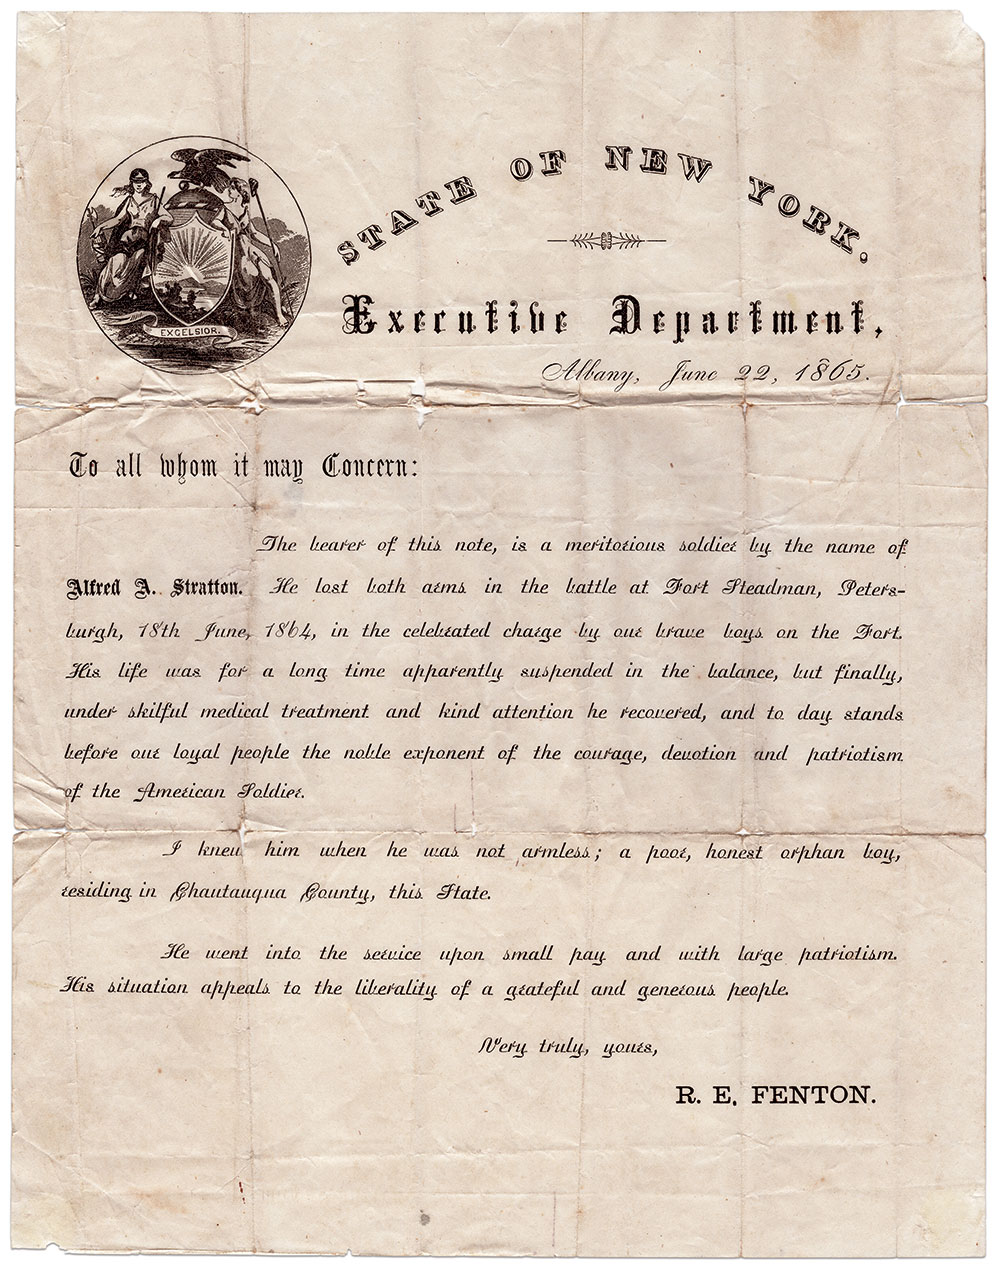 Letter of endorsement from Reuben E. Fenton, who served as the governor of New York from 1865 to 1868. Author's Collection.